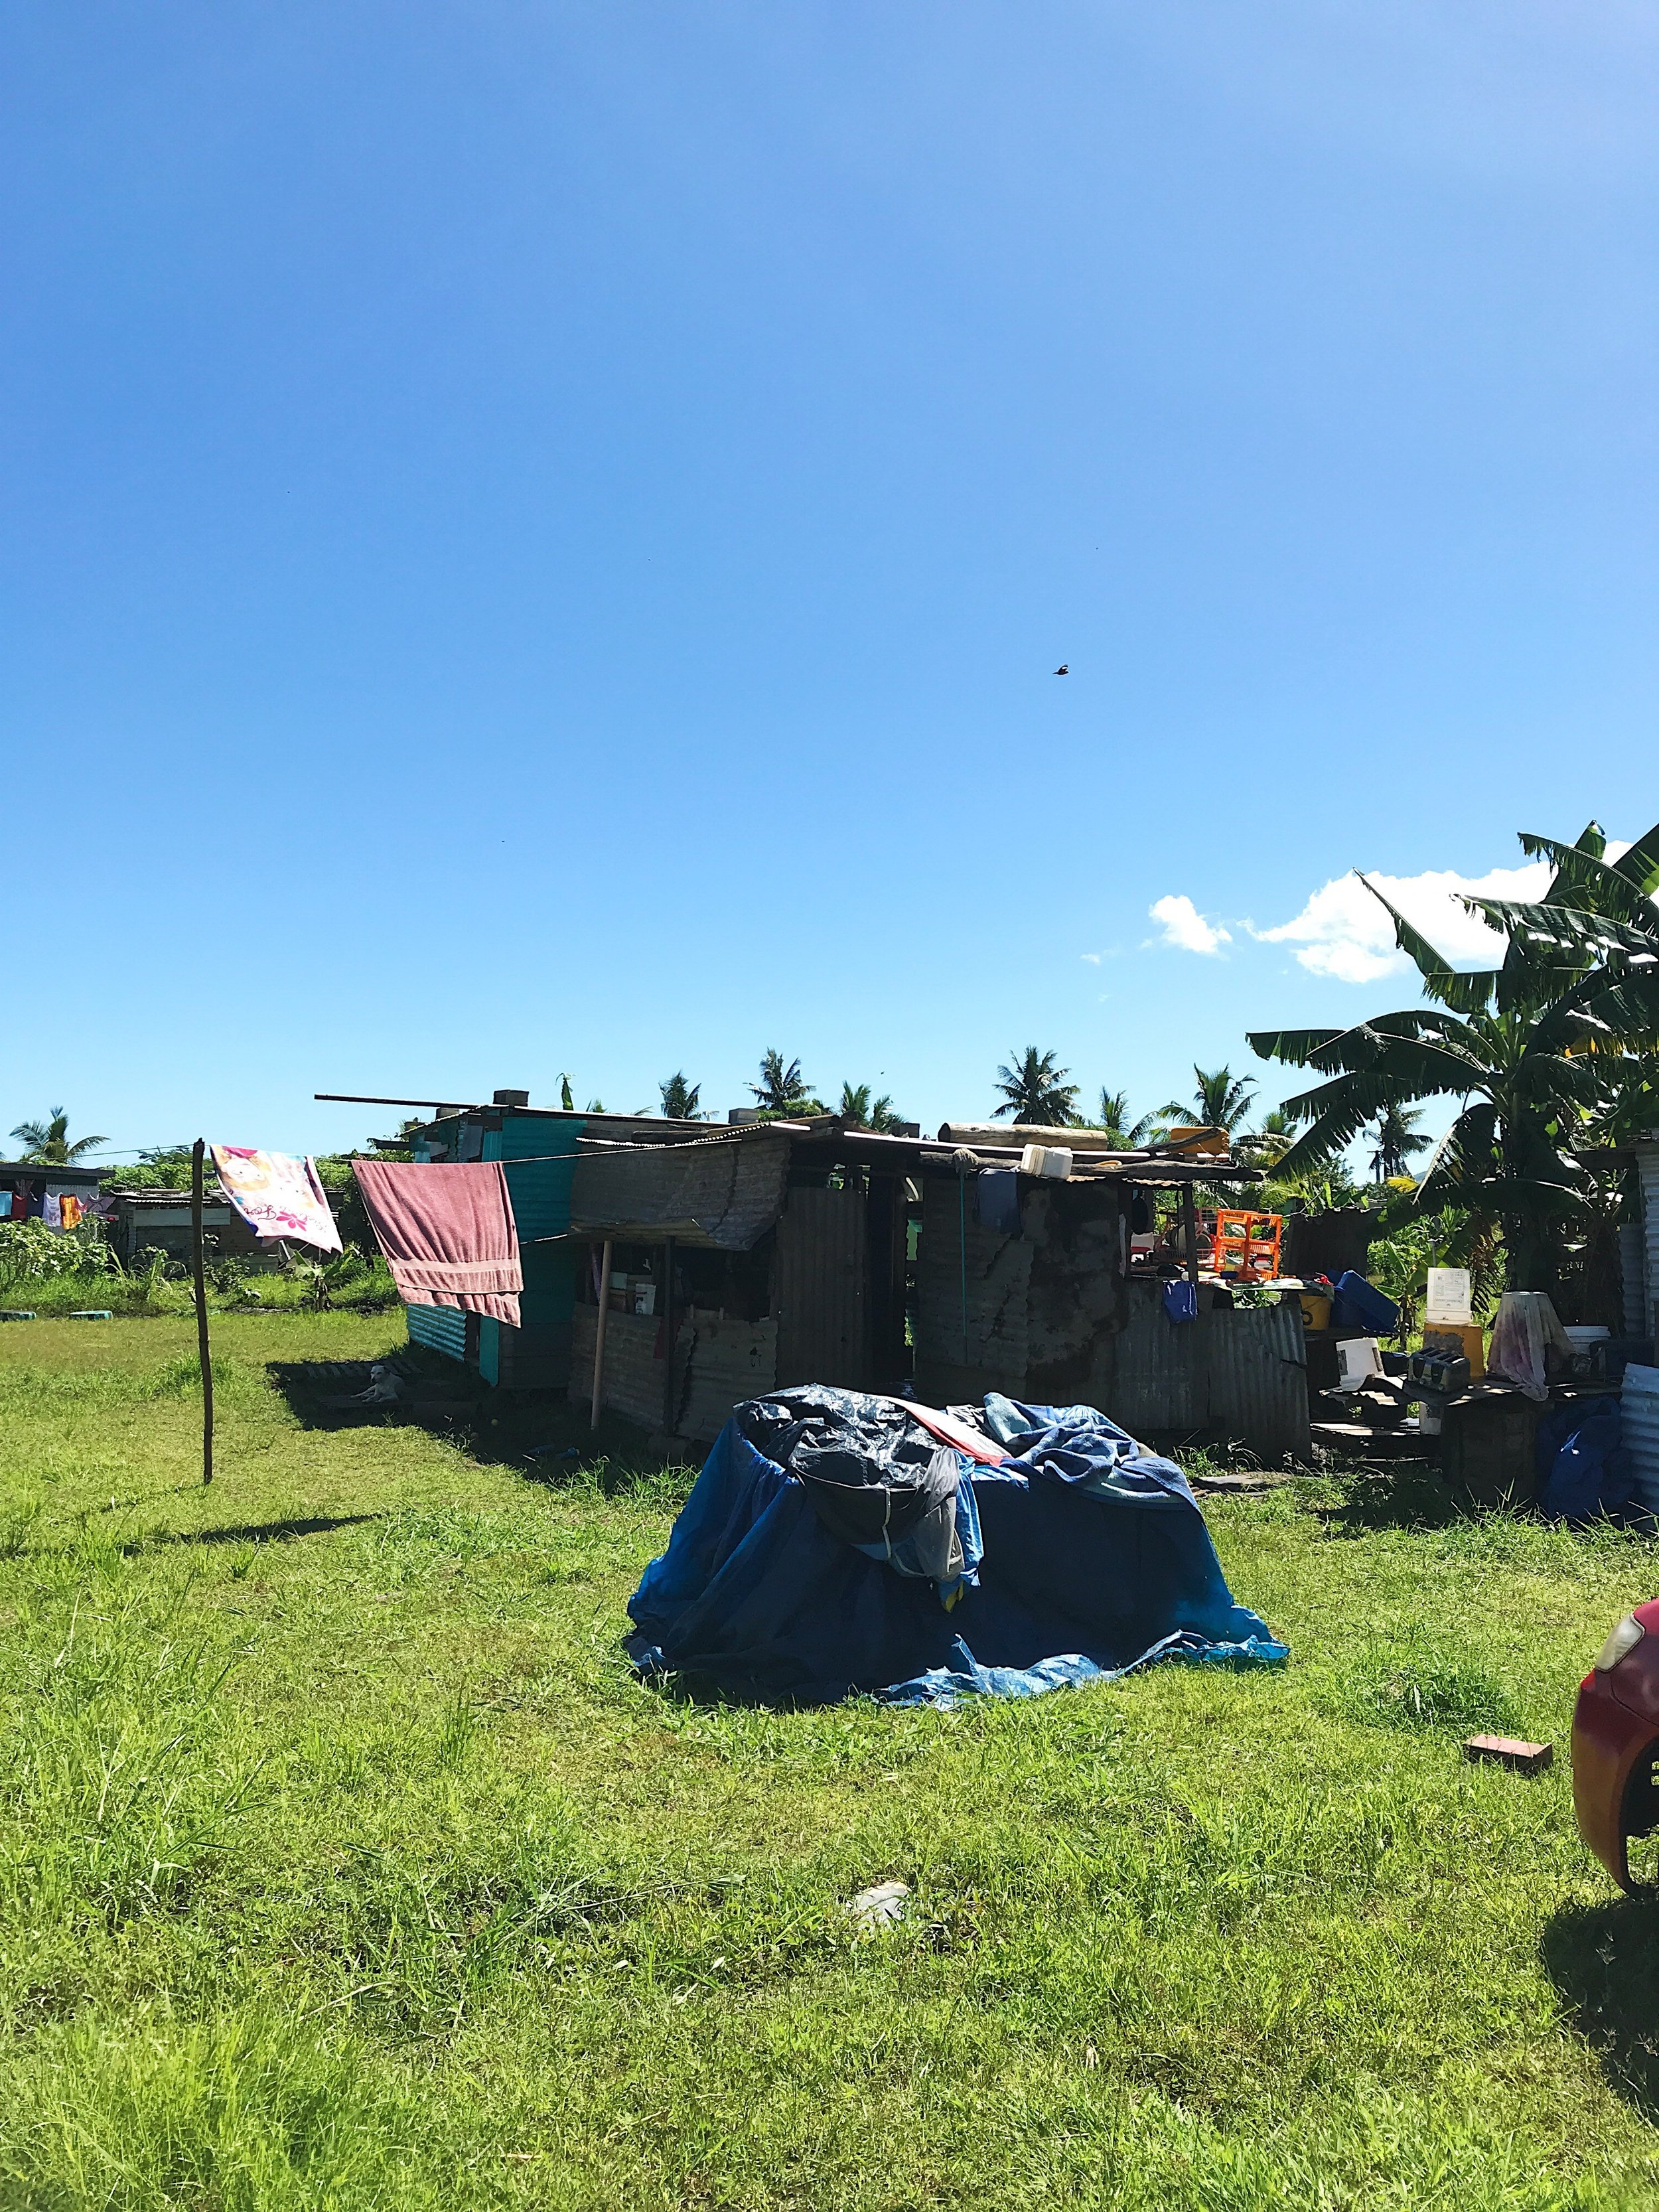 A Shanty in the Fiji community of California. This community relies almost entirely on rain water for consumption, and has been highly affected by the recent drought in the region. Photo by Yanik Rozon.